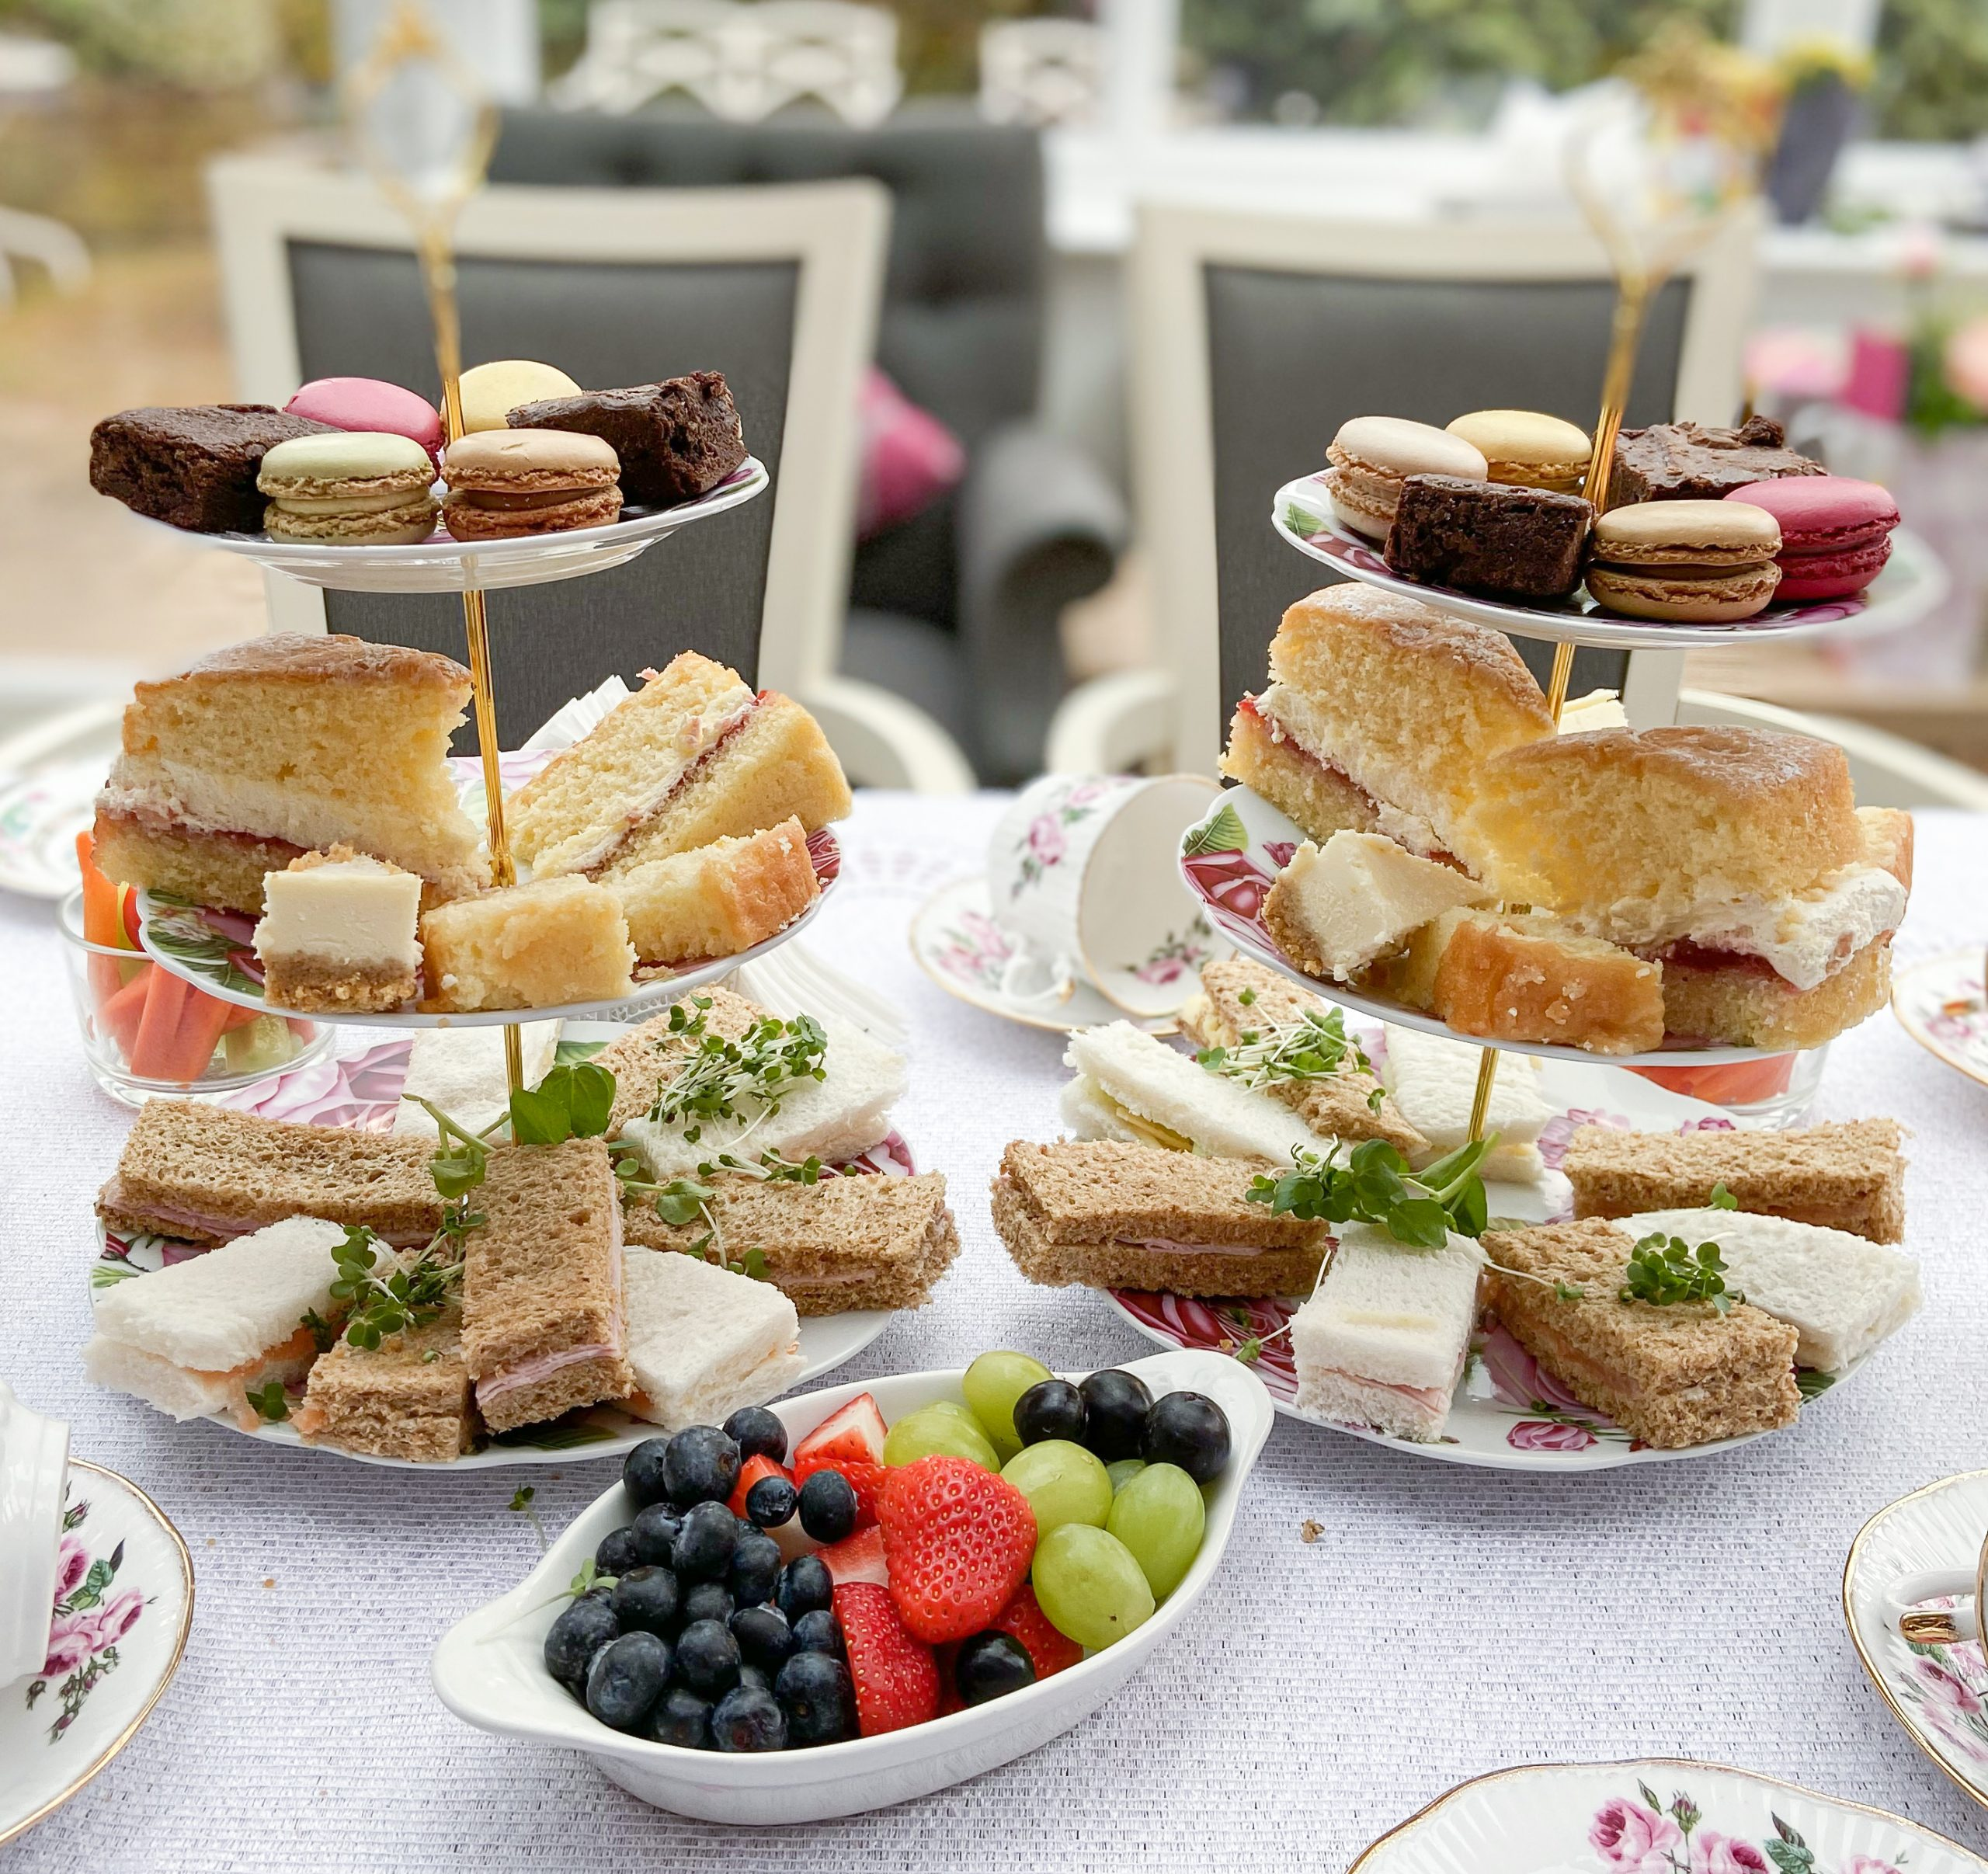 A selection of sandwiches and cakes available at the afternoon tea celebration